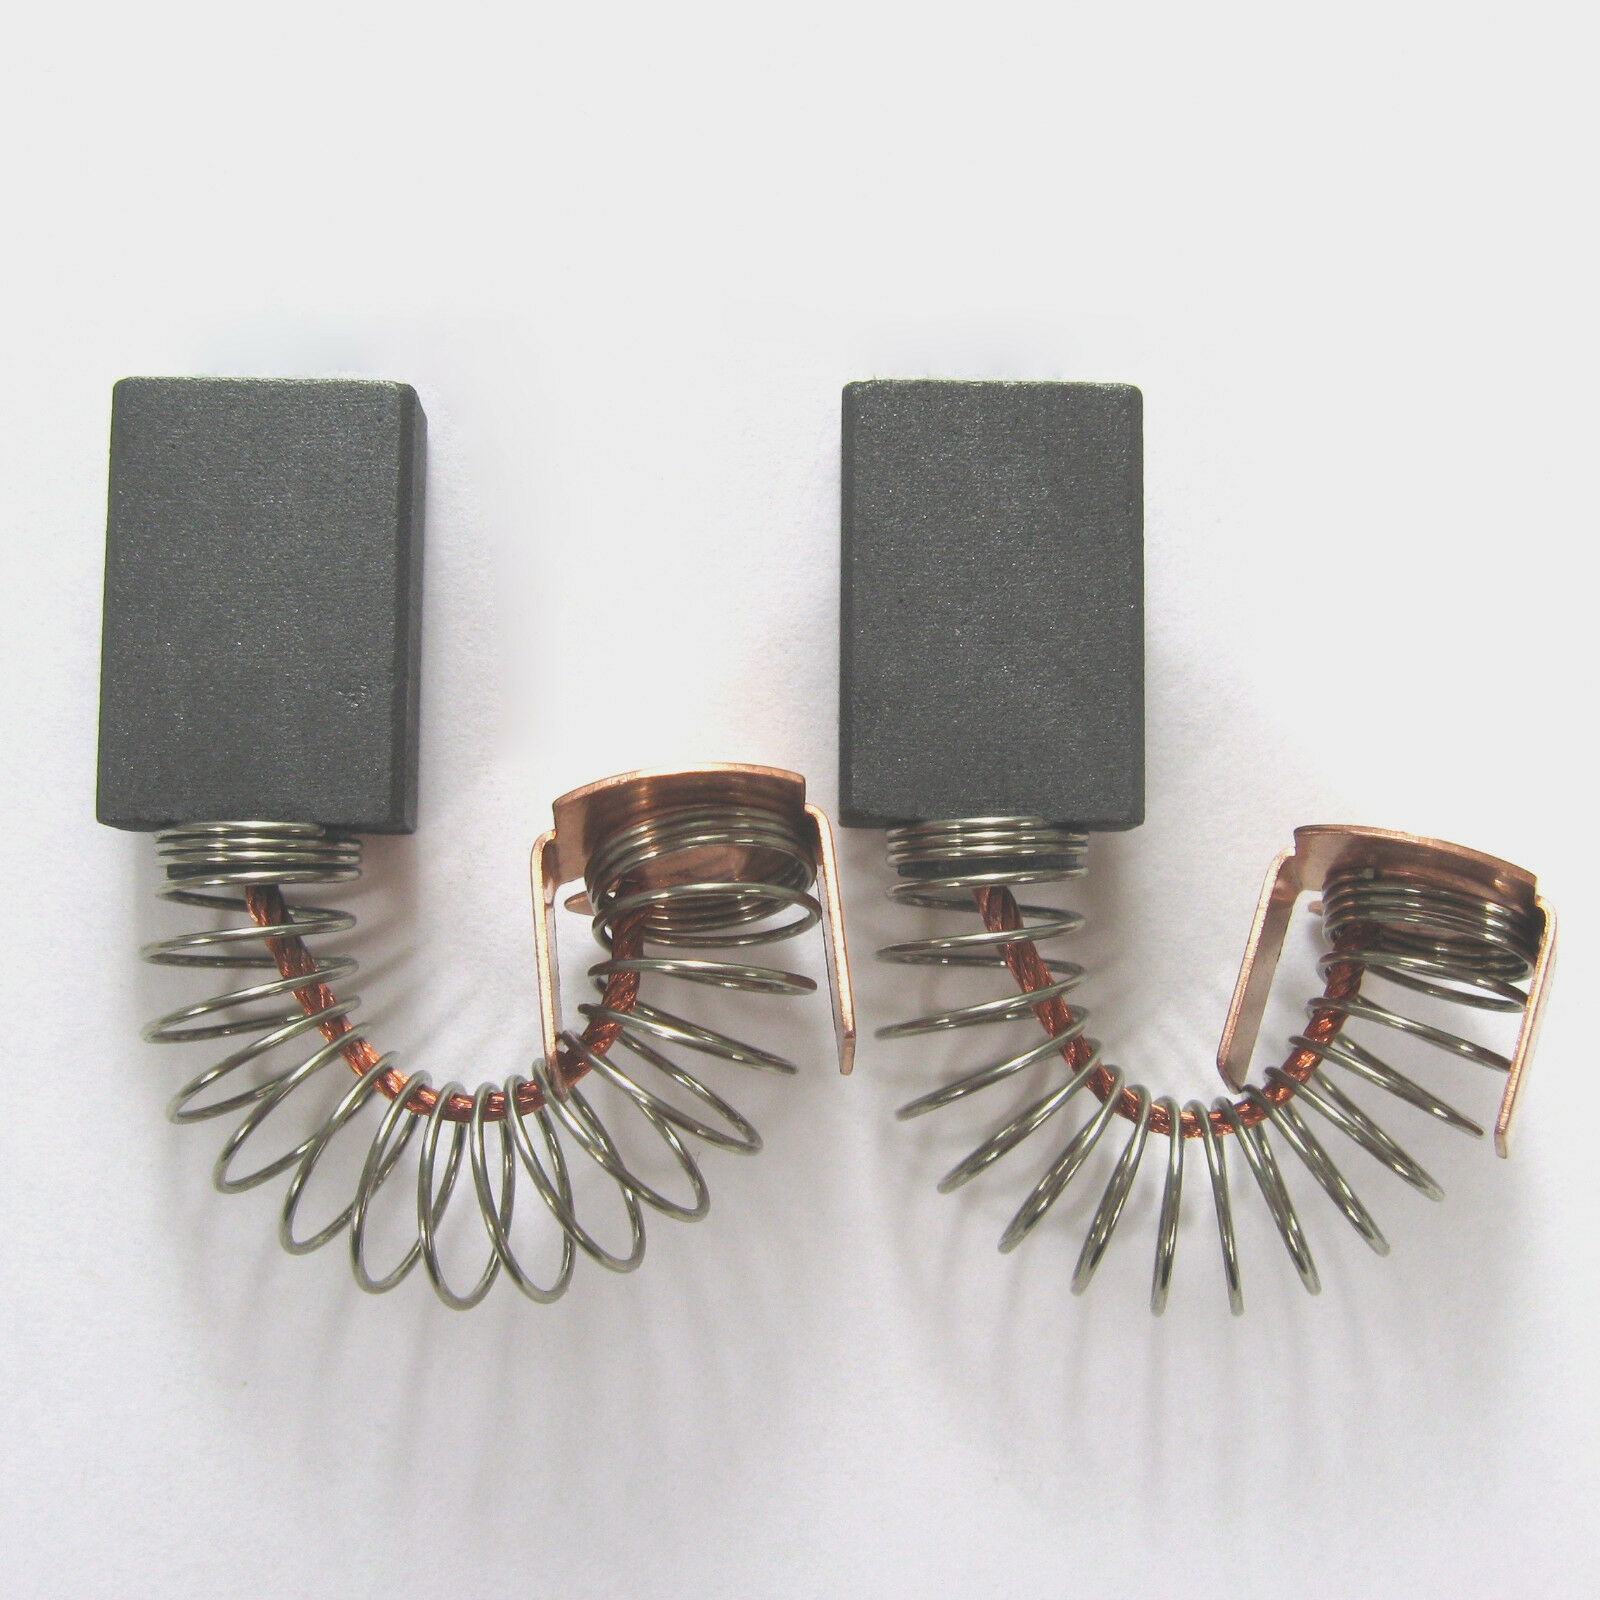 Brush Pair For Porter Cable 347 447 743 843 Circular Saws 51